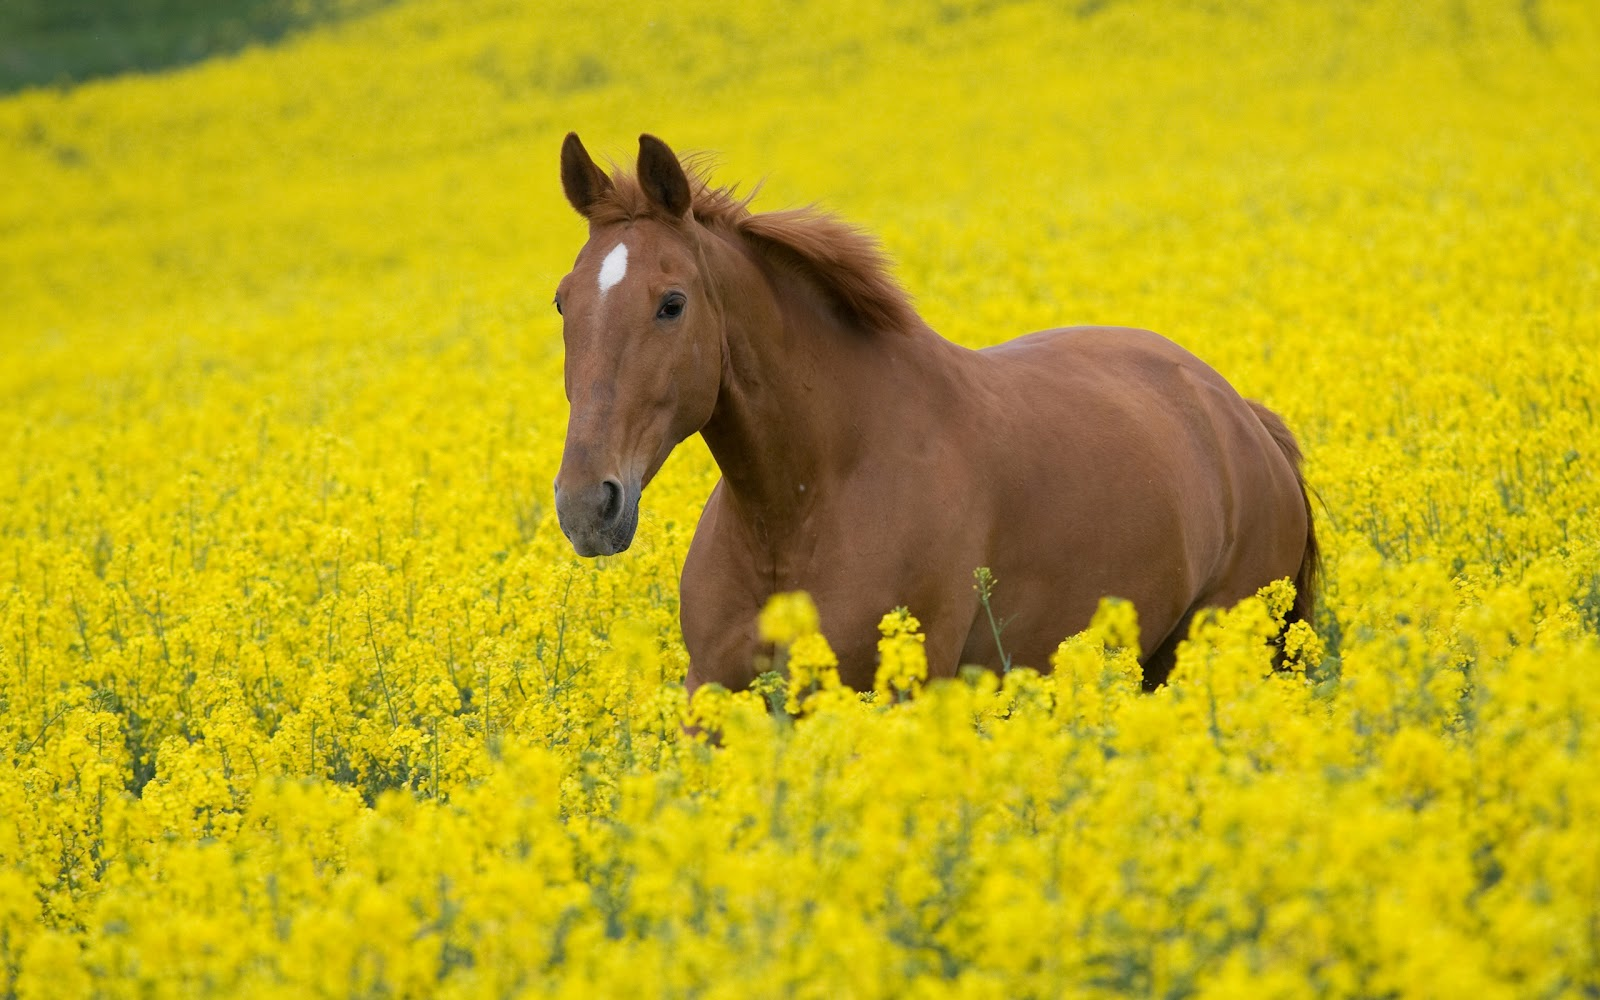 Great   Wallpaper Horse Beauty - MixoPlanet+%2810%29  Collection_904640.jpg